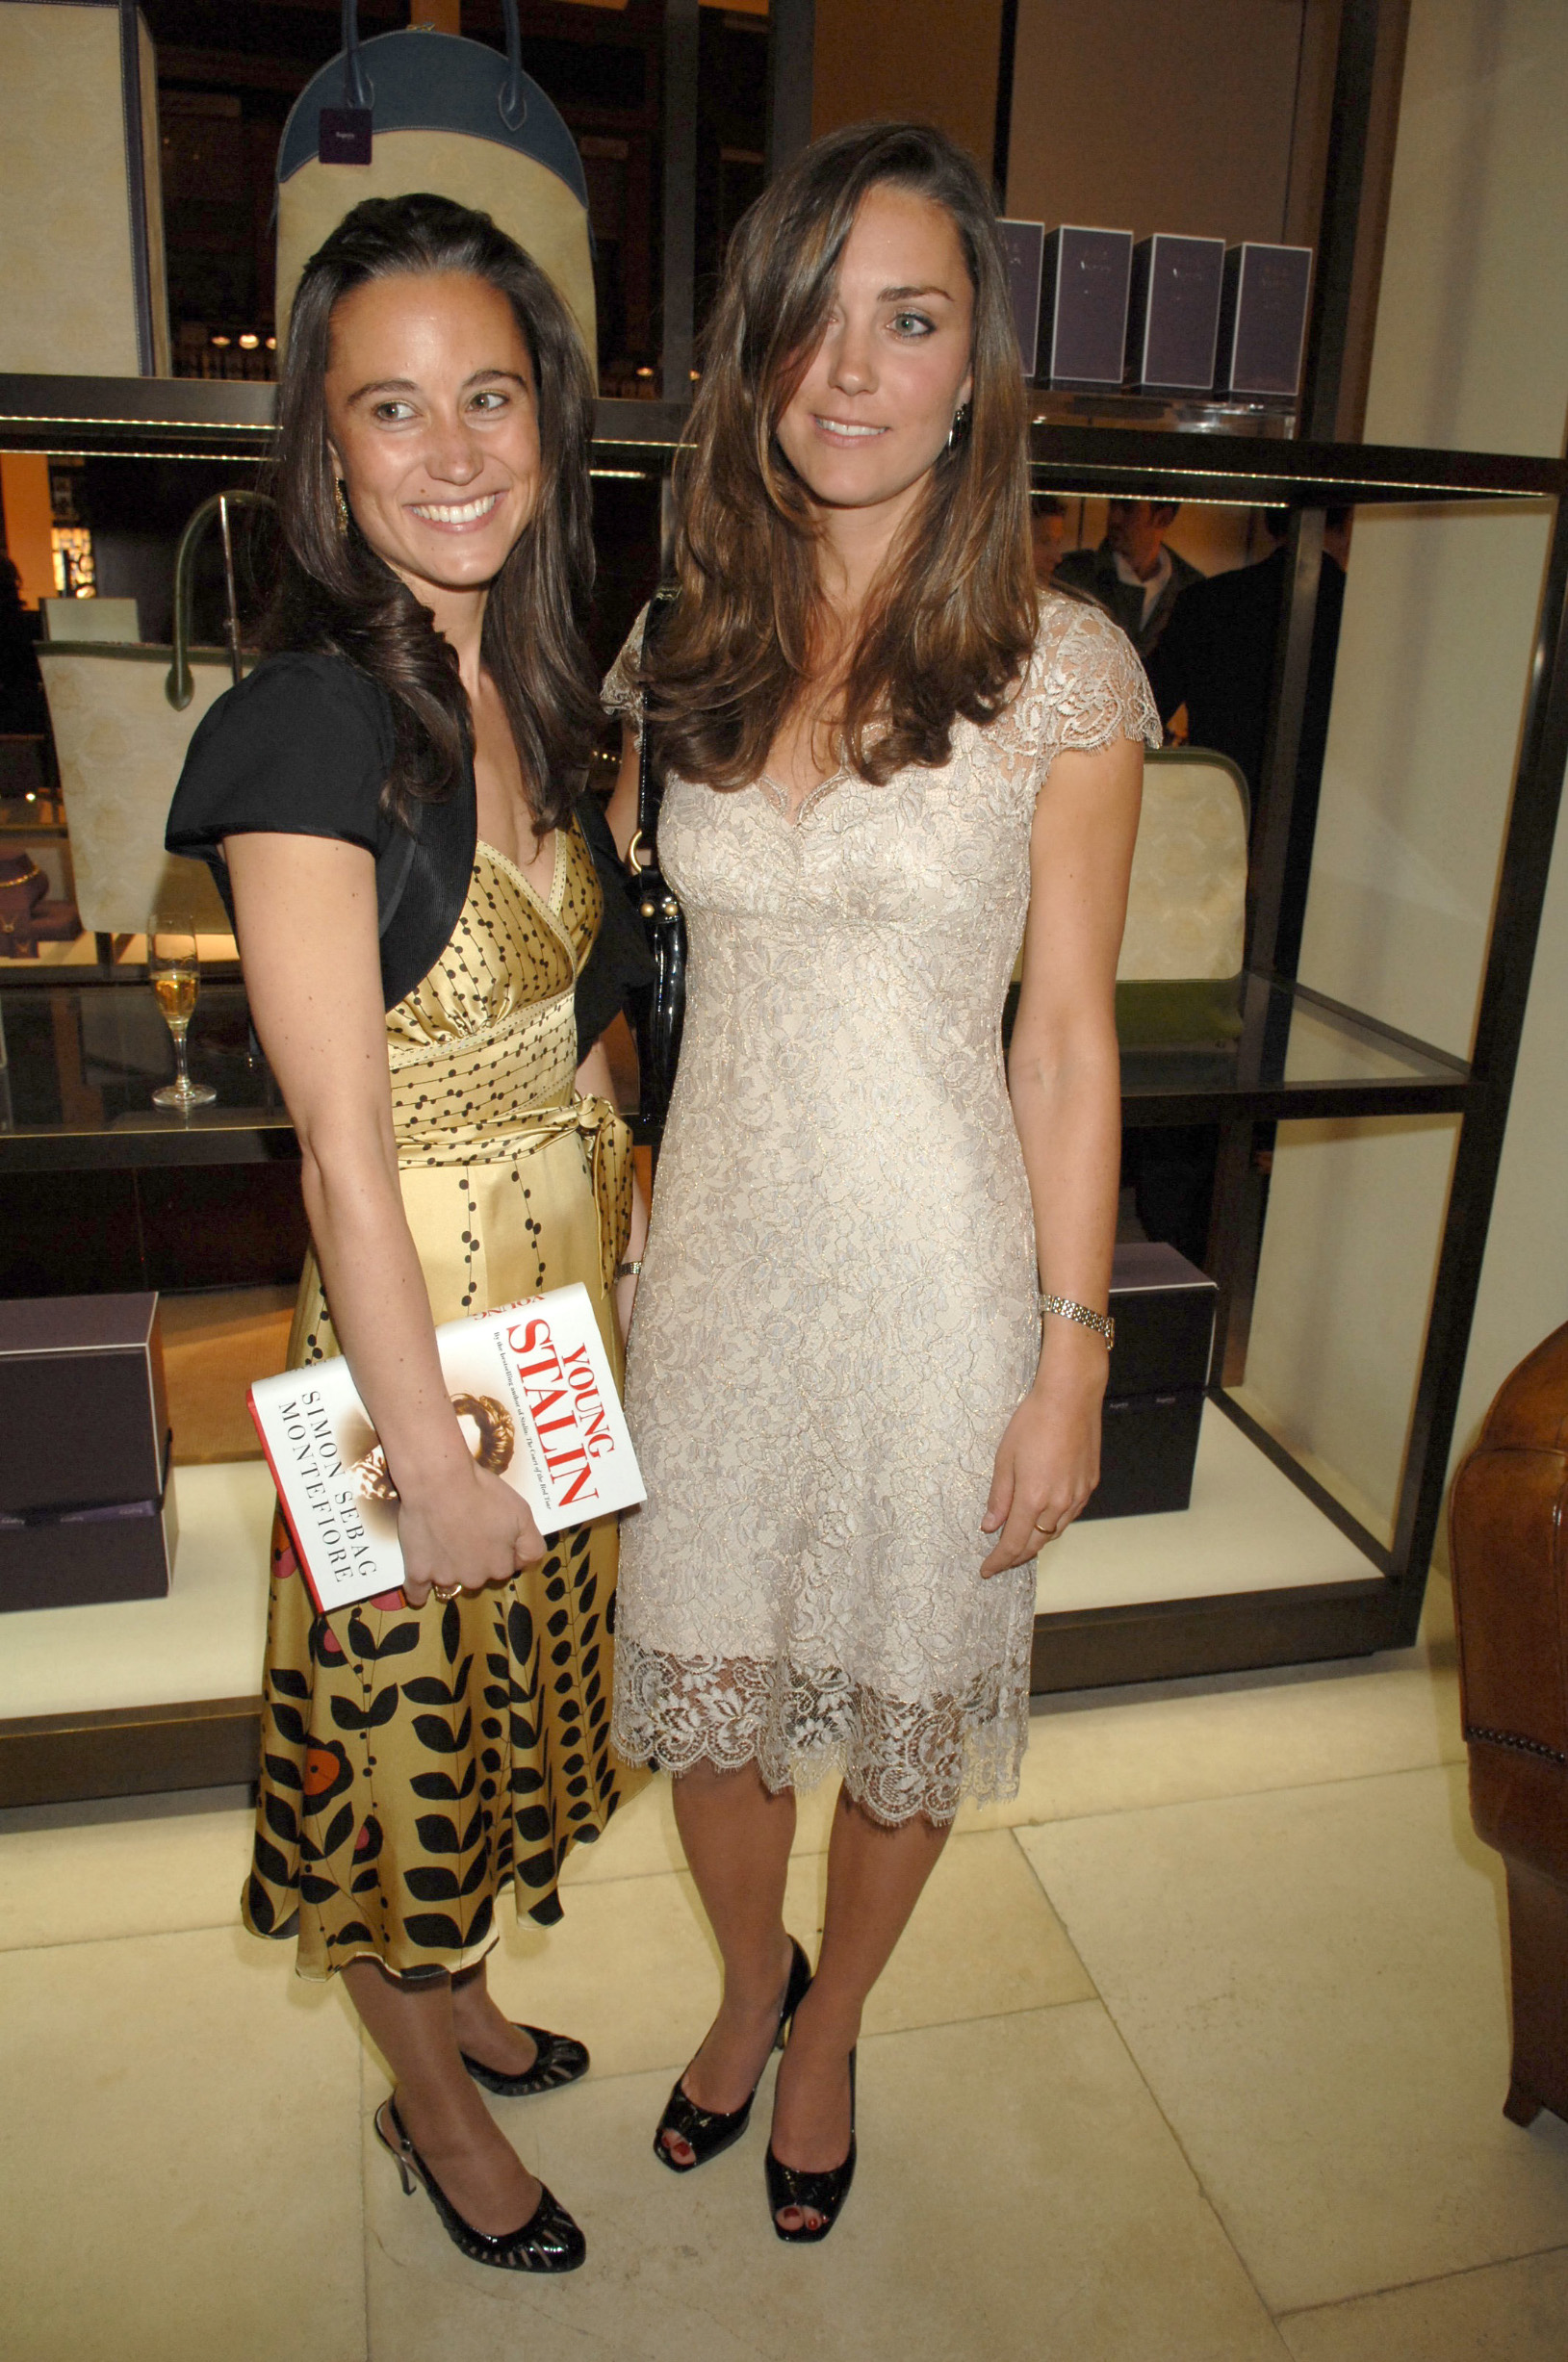 Pippa Middleton and Kate Middleton Simon Sebag Montefiore's 'Young Stalin' book launch, Aspreys, London, Britain - 14 May 2007, Image: 221350764, License: Rights-managed, Restrictions: , Model Release: no, Credit line: Richard Young / Shutterstock Editorial / Profimedia